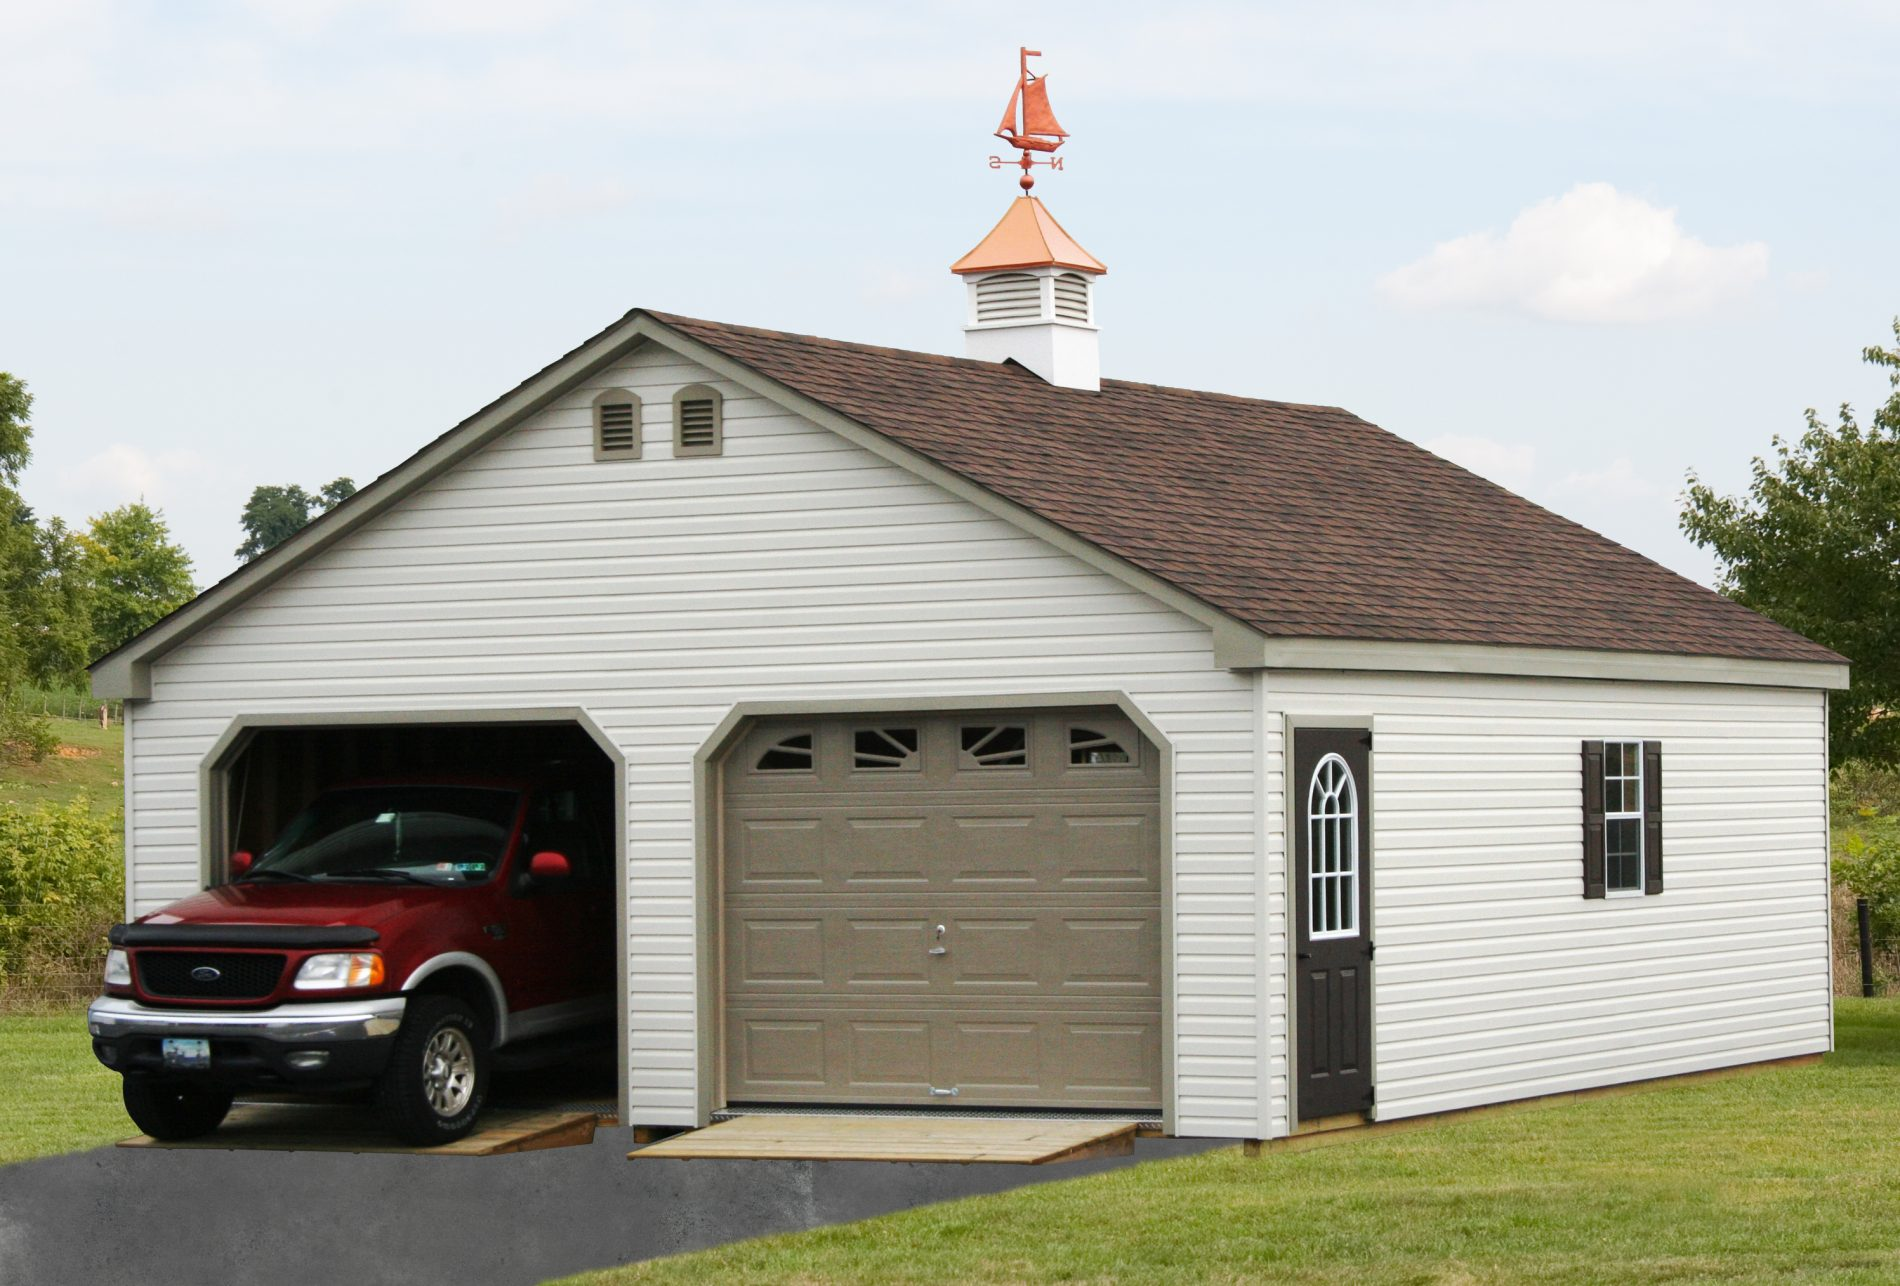 Double wide garages 2 car garages for sale zook cabins for Log cabin garages for sale